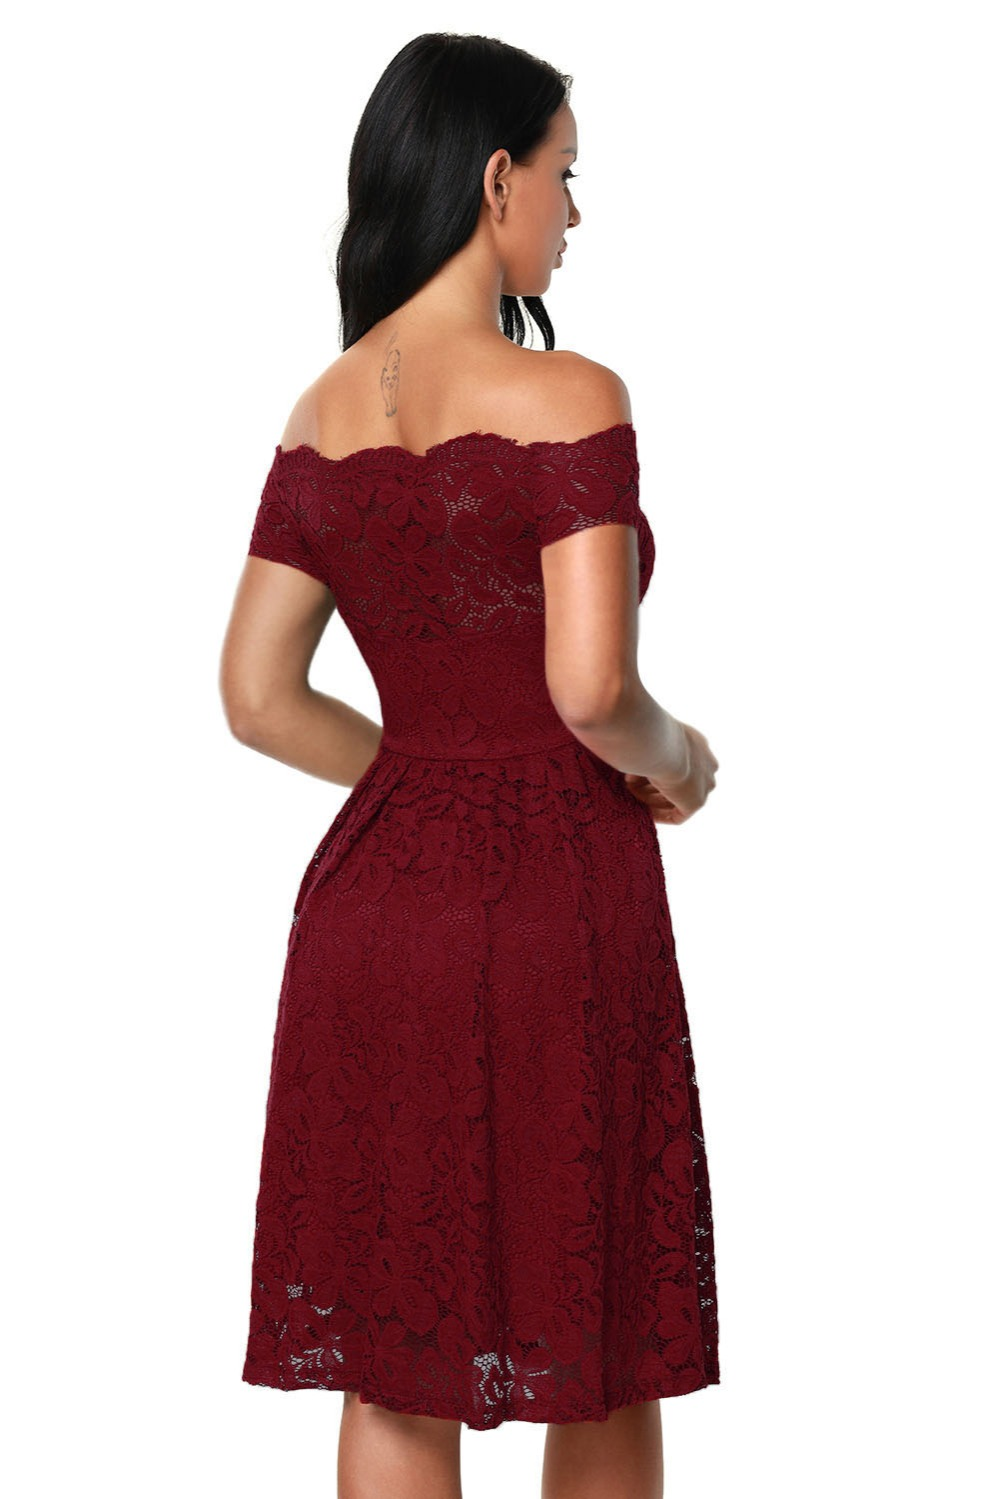 e9d07ee6fdc5 Zmvkgsoa Wine red blue black lace dress women off shoulder fit and flare  korean fashion sexy elegant women dresses online Q61446